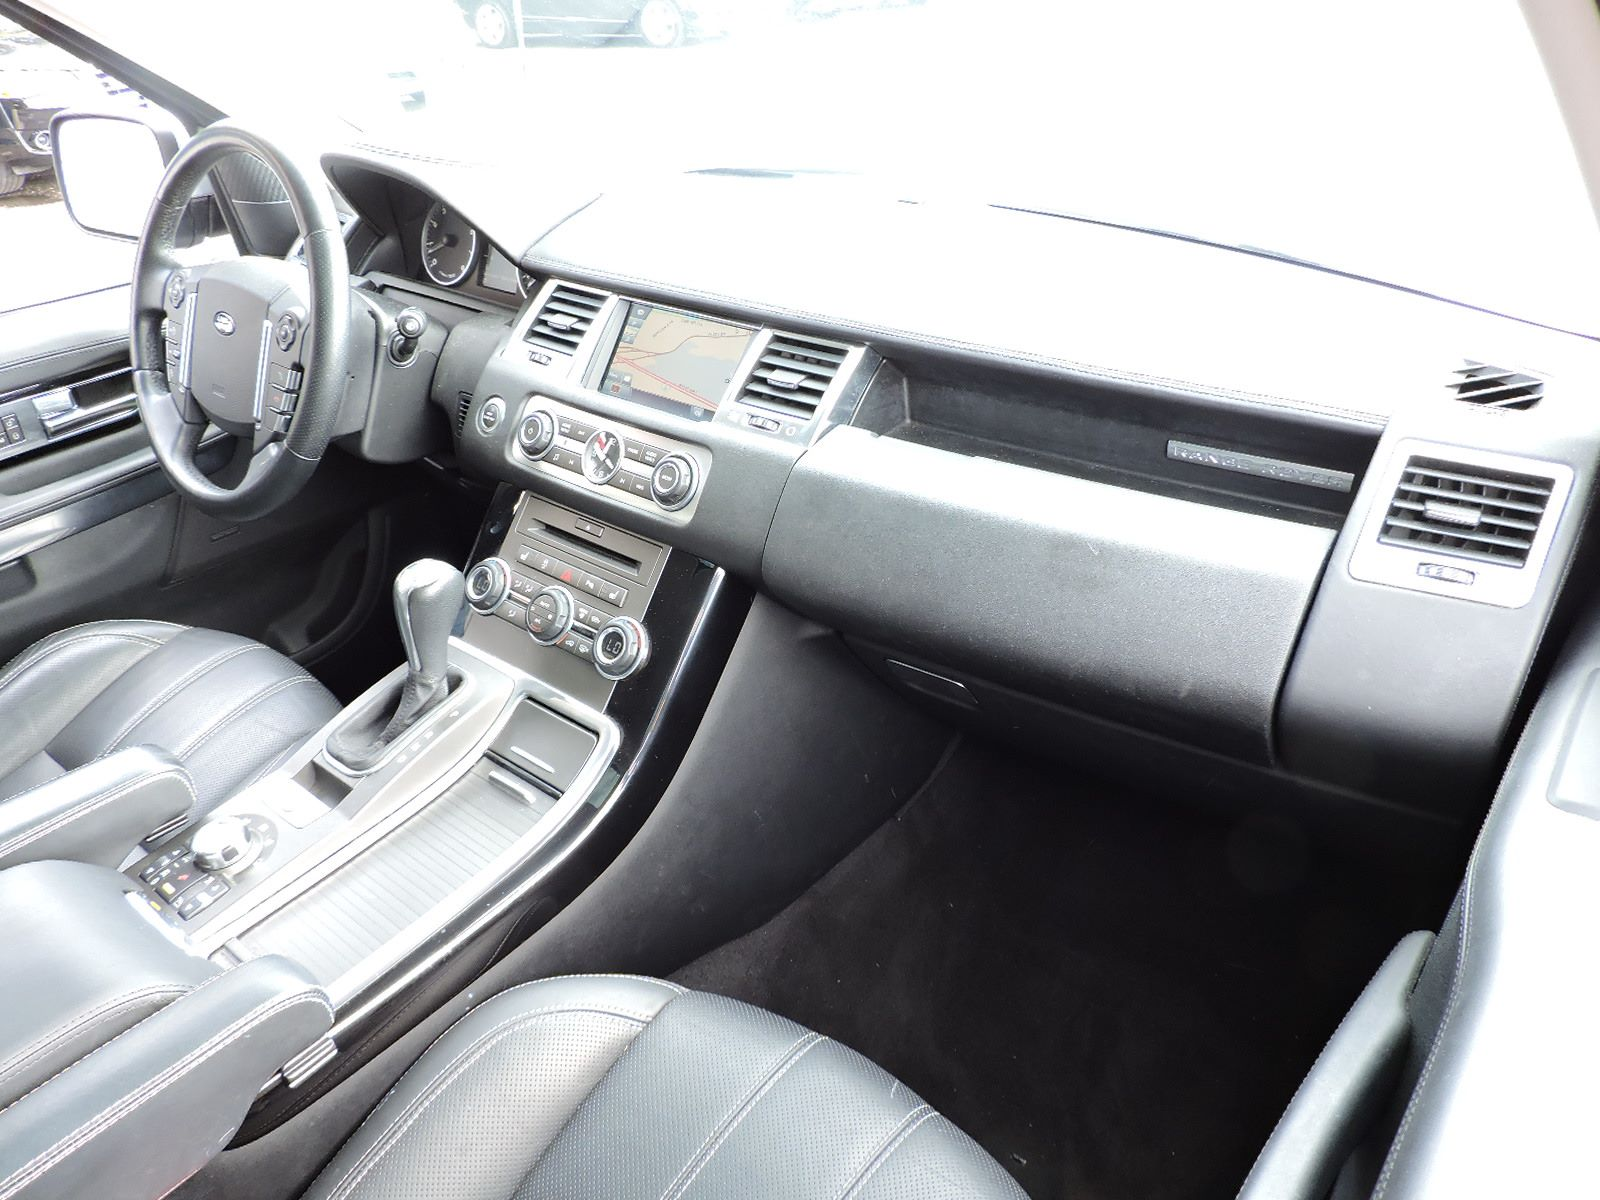 Used 2011 Land Rover Range Rover Sport HSE LUX at Auto House USA